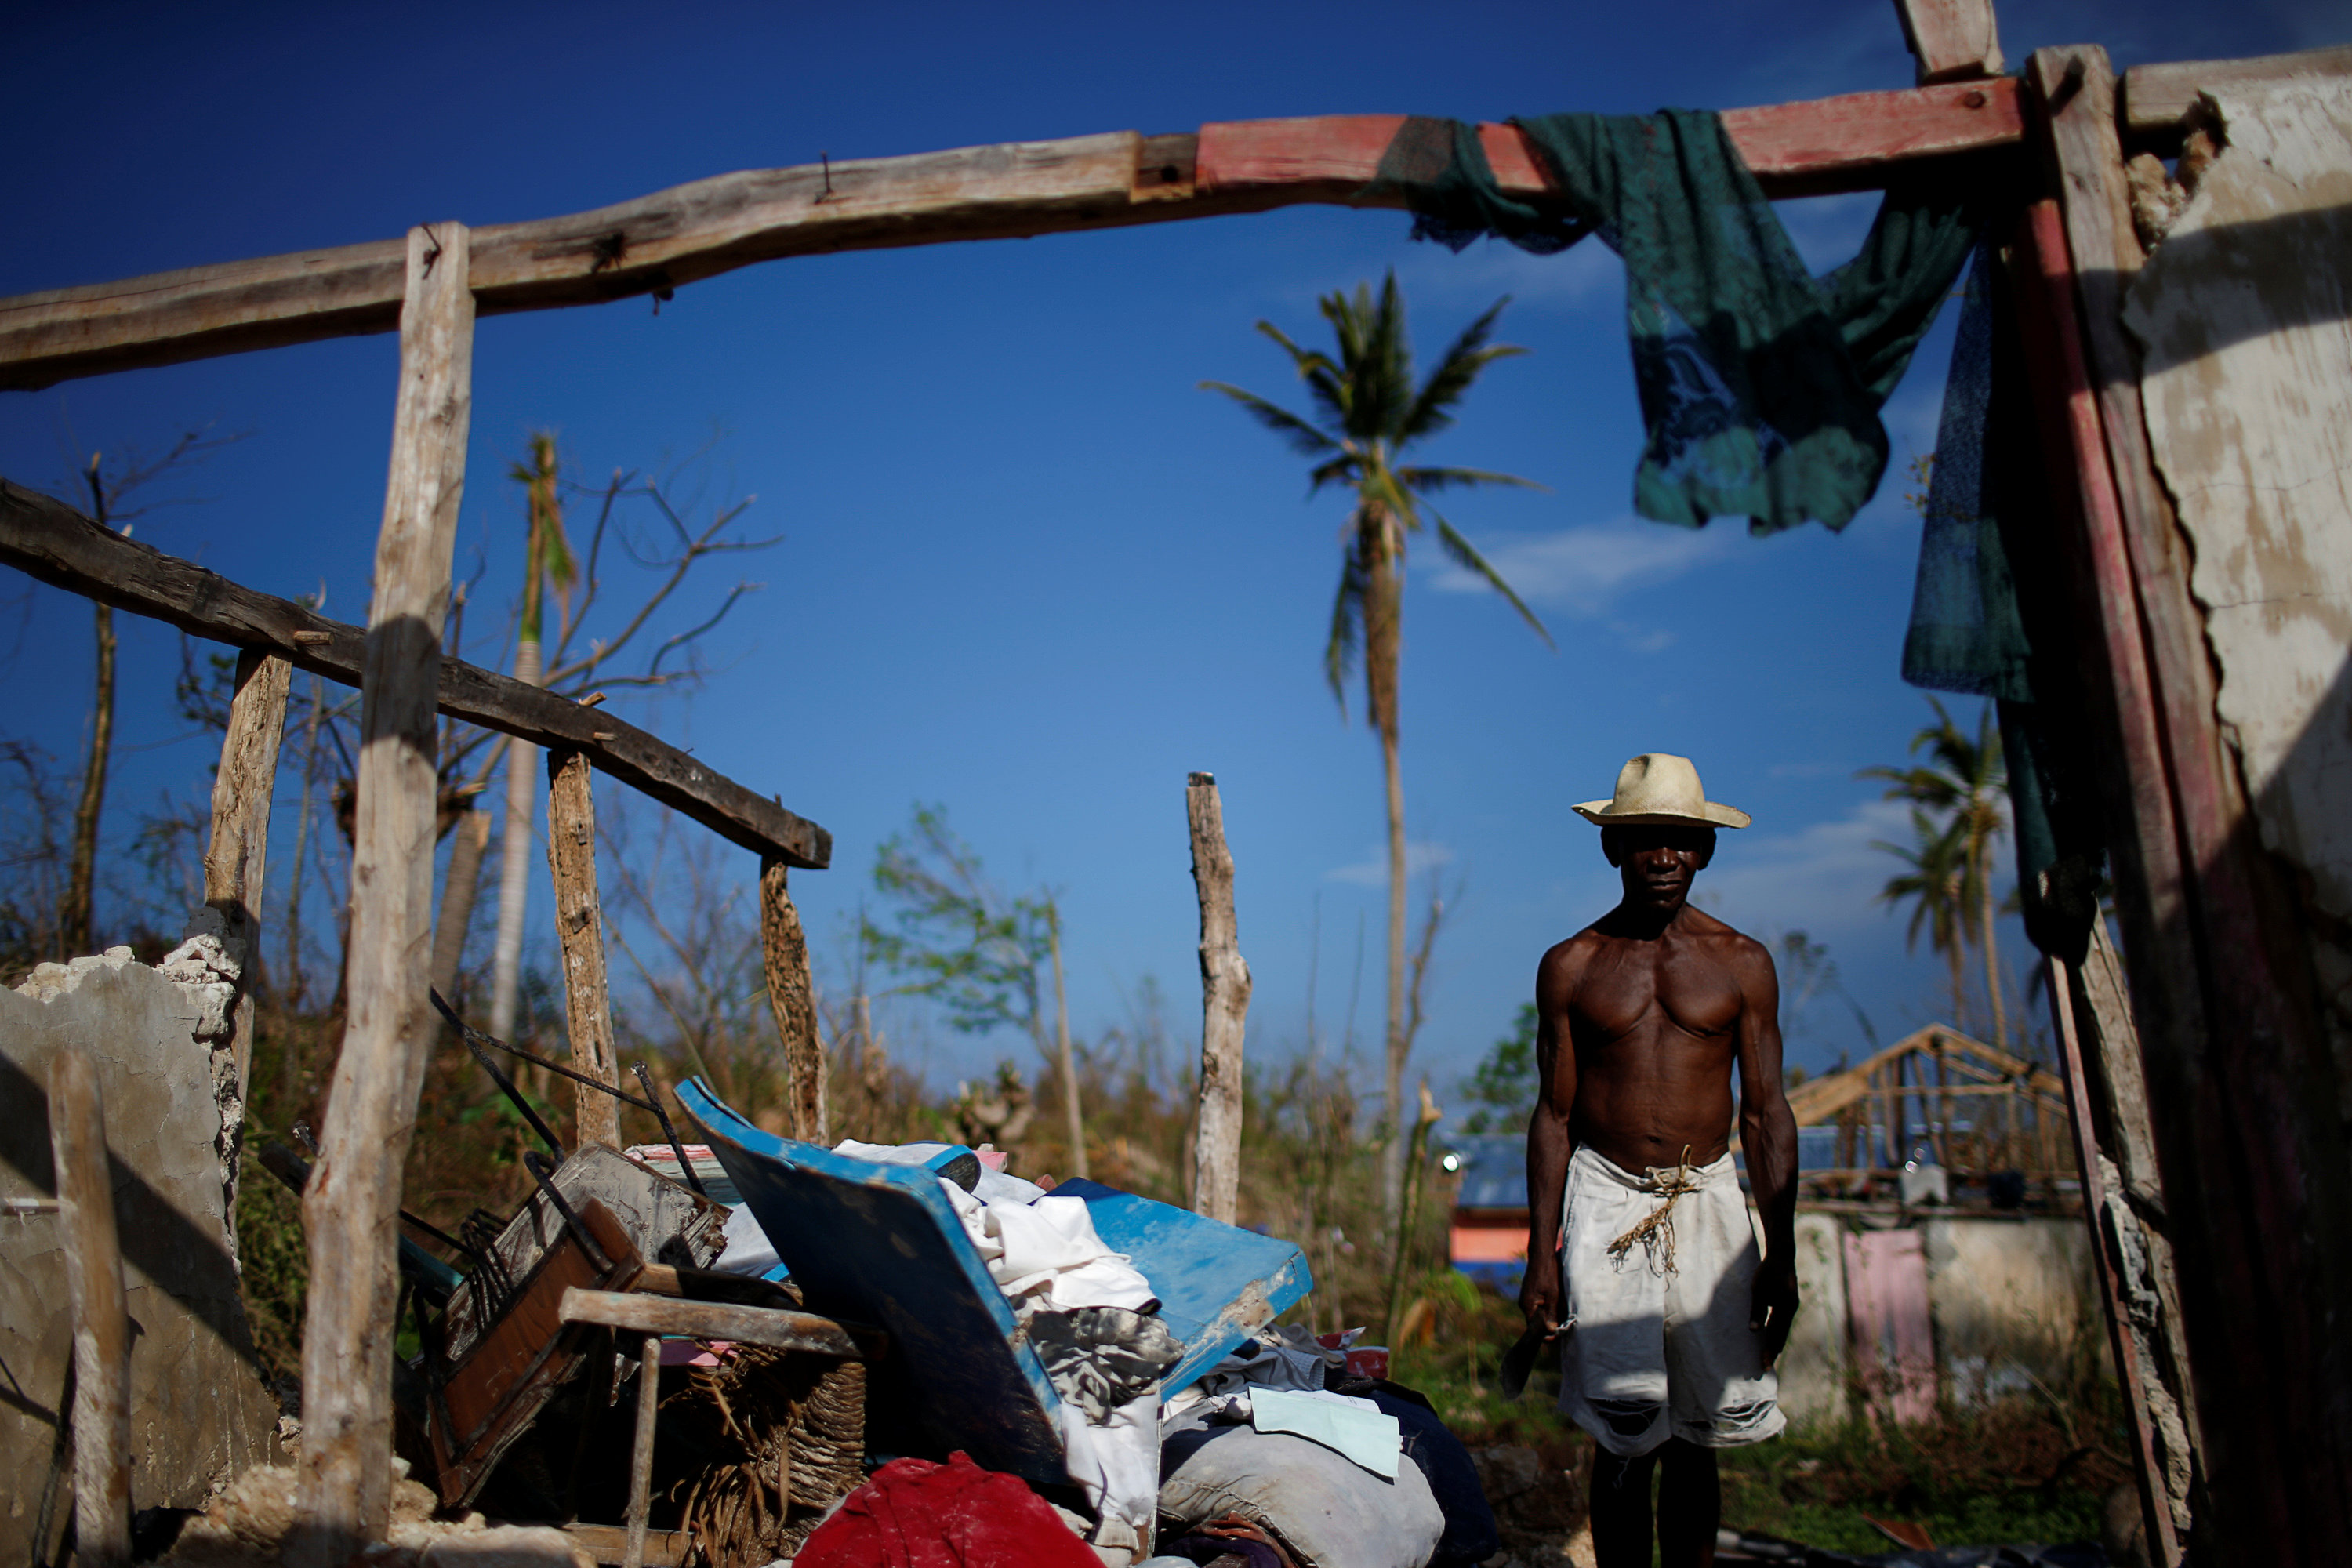 "Liface Luc, 66, poses for a photograph in his destroyed house after Hurricane Matthew hit Jeremie, Haiti, October 15, 2016. ""I don't need to say nothing, my house explains everything. It's completely flat. I lost everything; my crops, my animals, so I have nothing left. It's like my two hands had been cut. What can I say? I'm at death's door,"" said Luc."